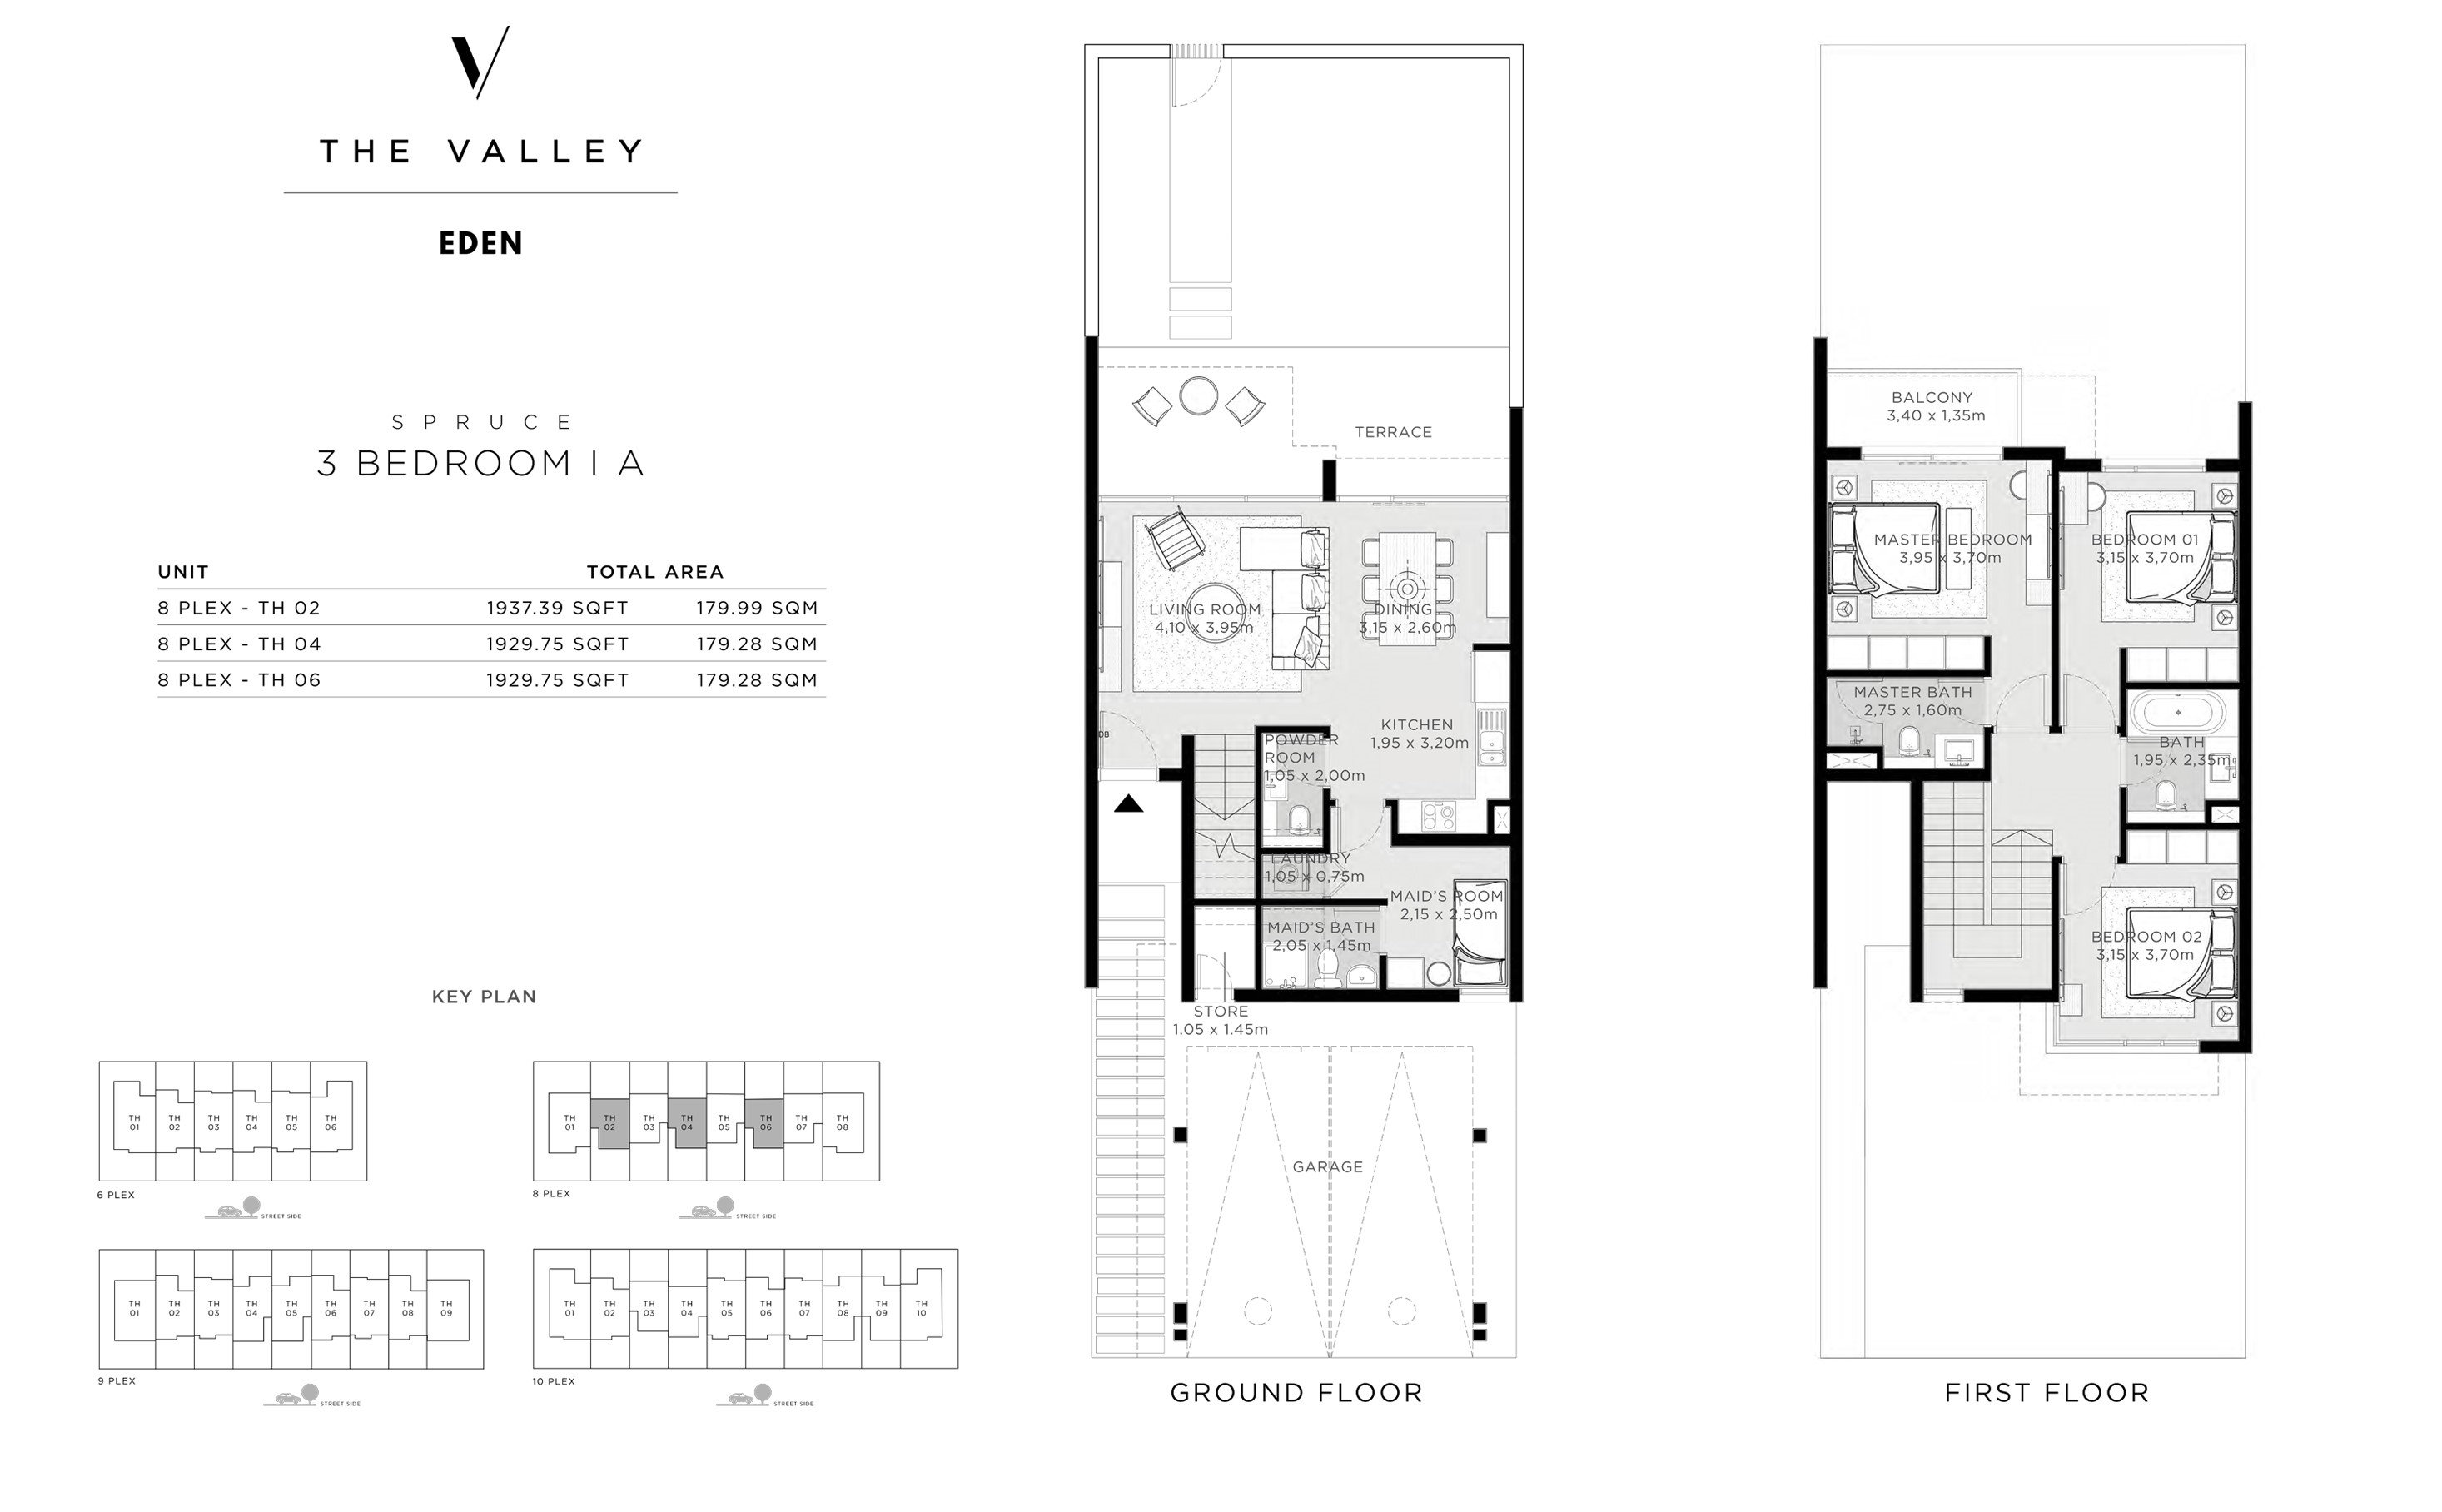 3 Bedroom I A, SPRUCE, Size 1929 Sq Ft